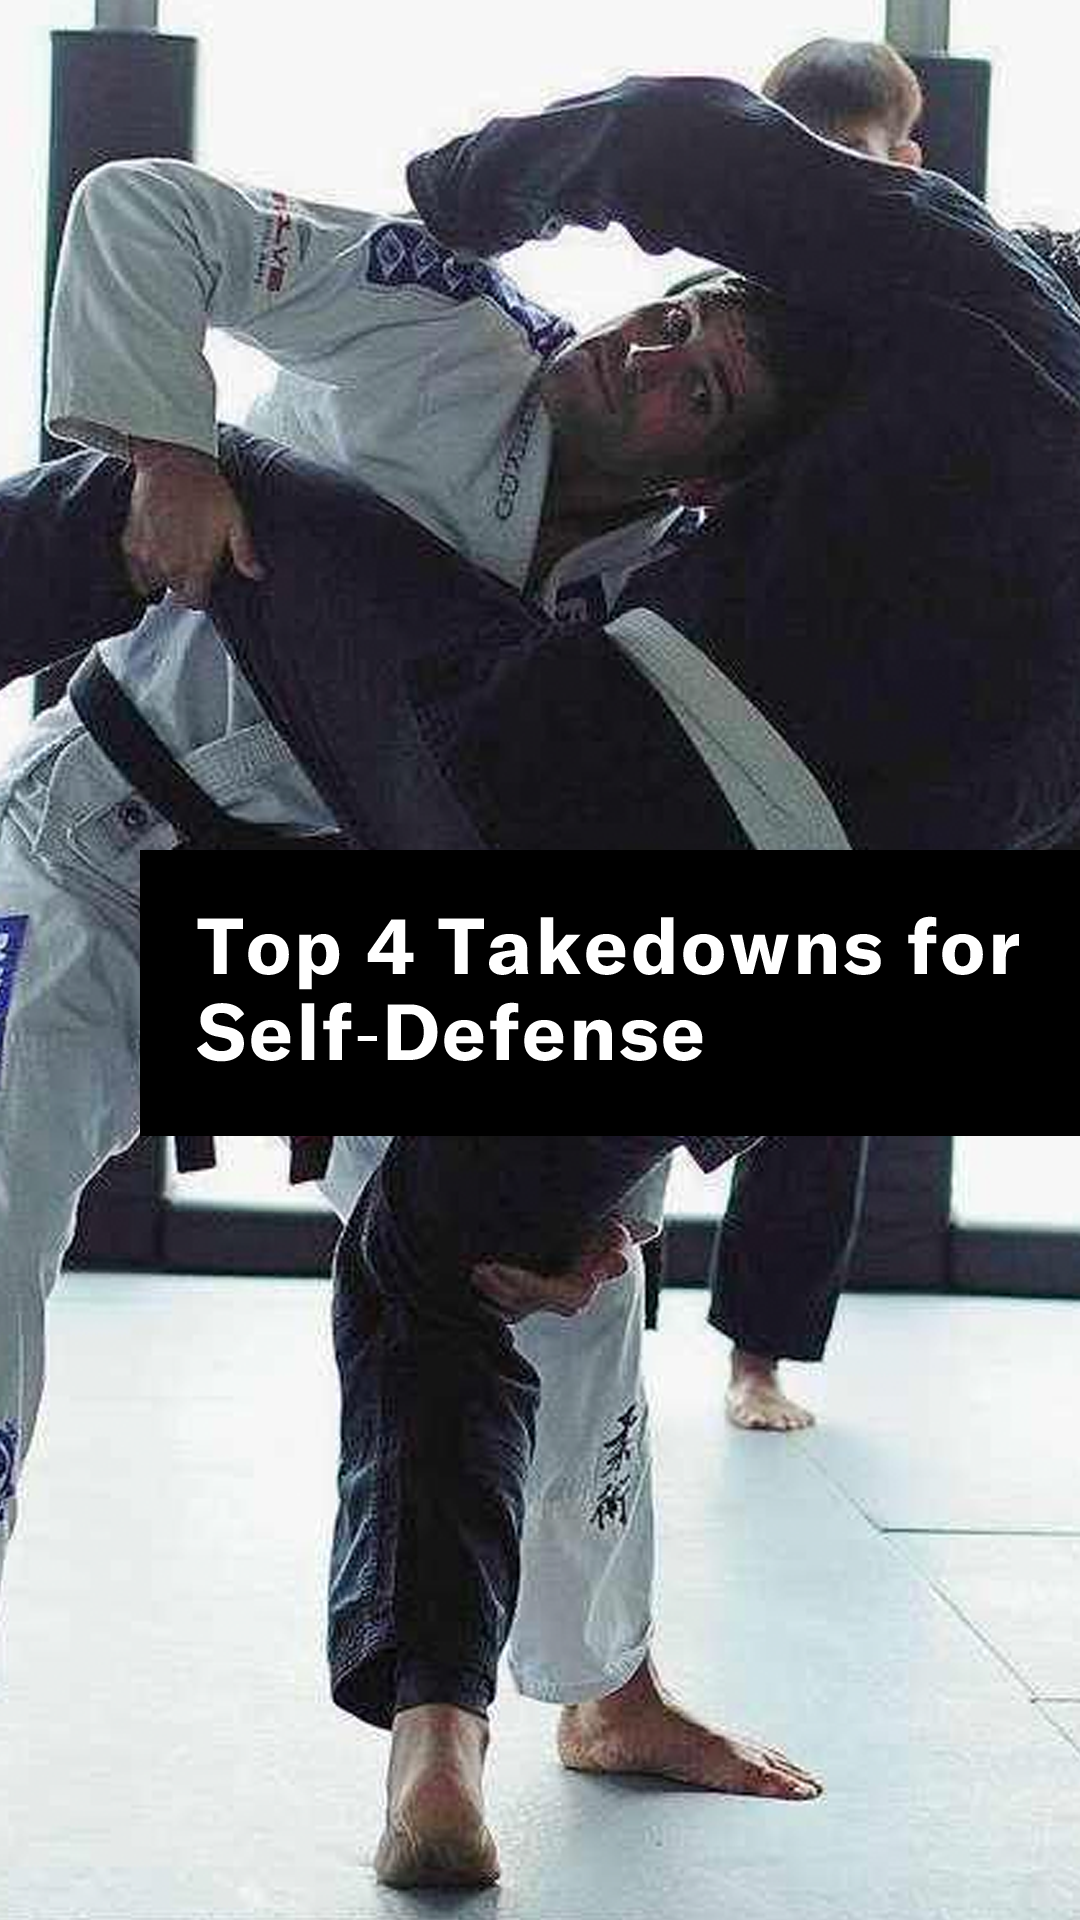 Top 4 Takedowns for Self-Defense